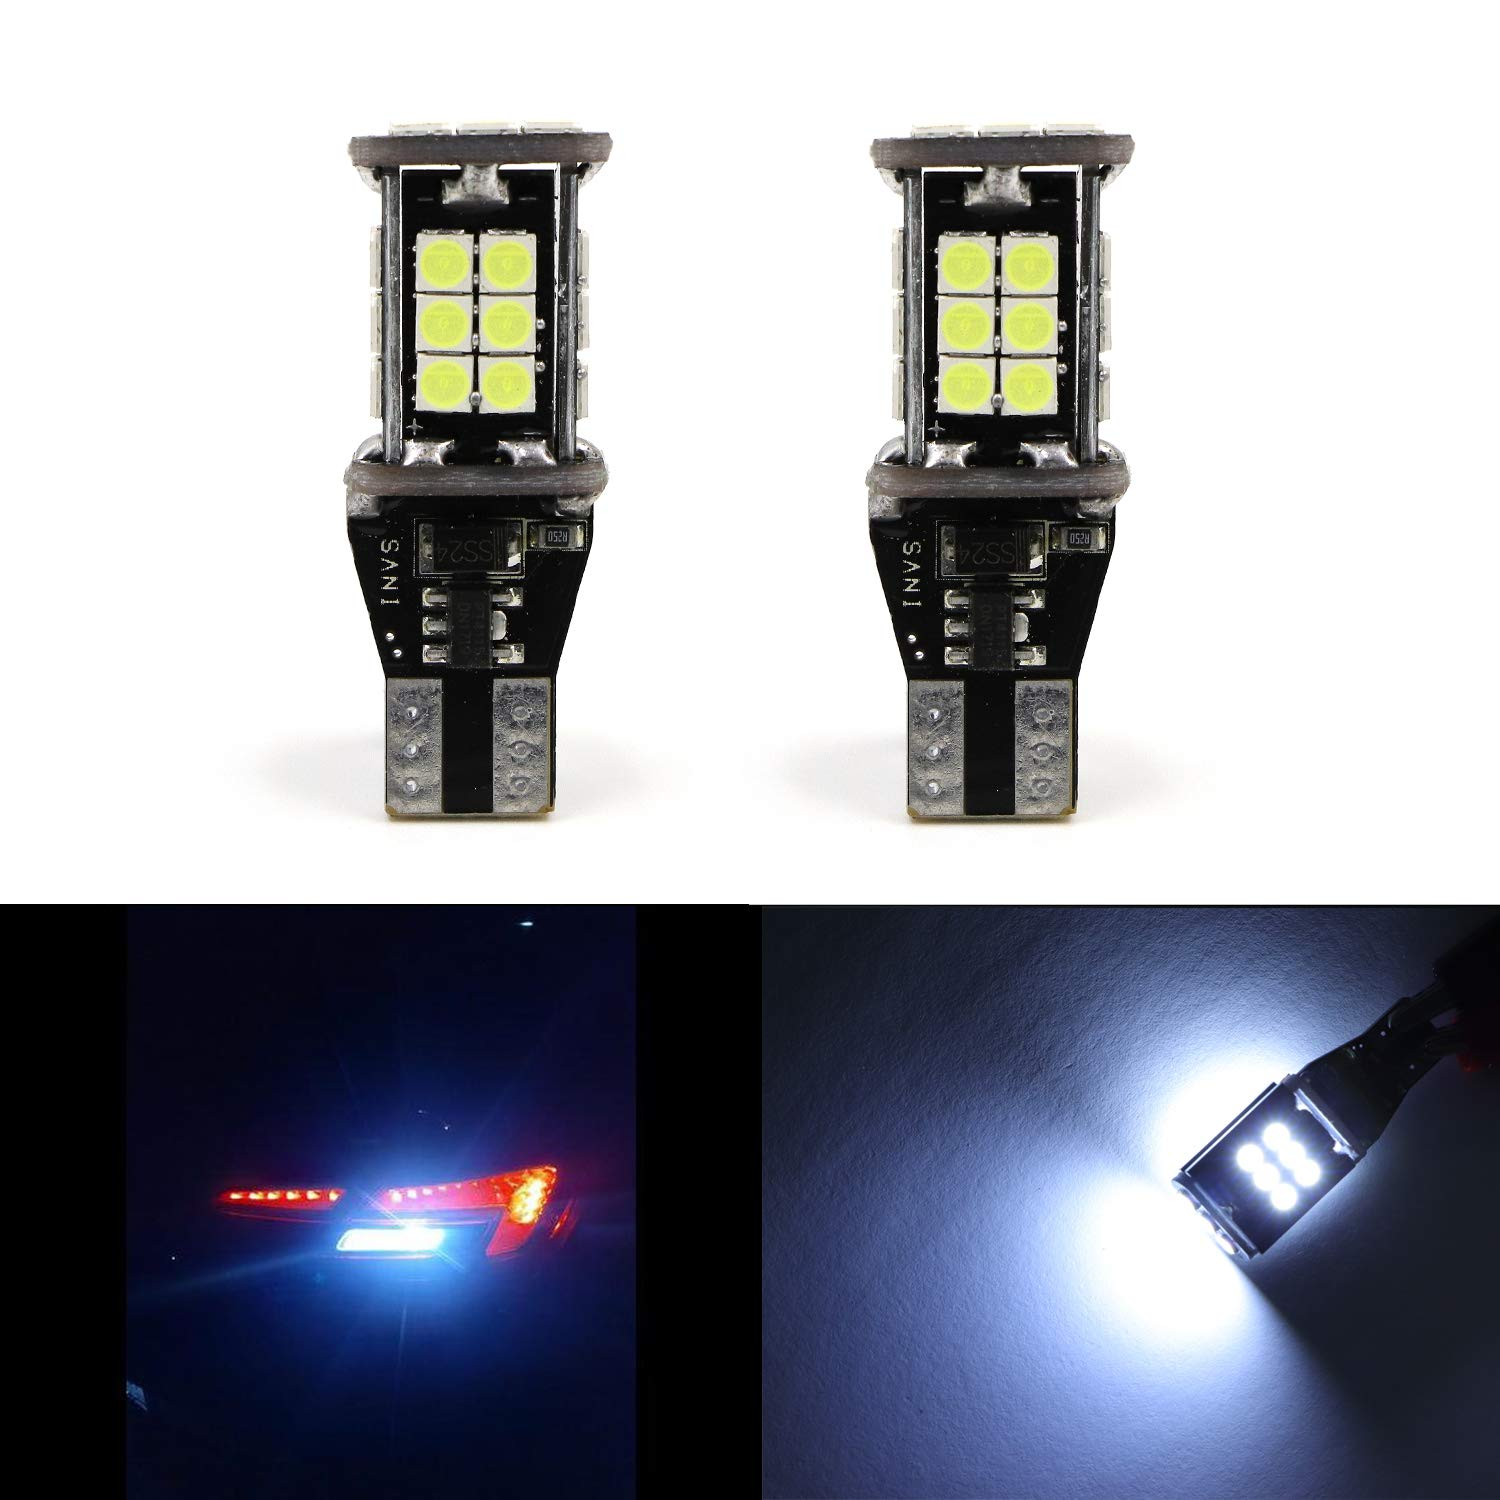 7740 7441 7443 7444 Extremely Bright White-6000K Light 5630 w/33 SMD LED T20 Bulbs for Back up/Reverse Light, Side Marker Light, Tail Brake Lamps (Pack of 2) Youxmoto